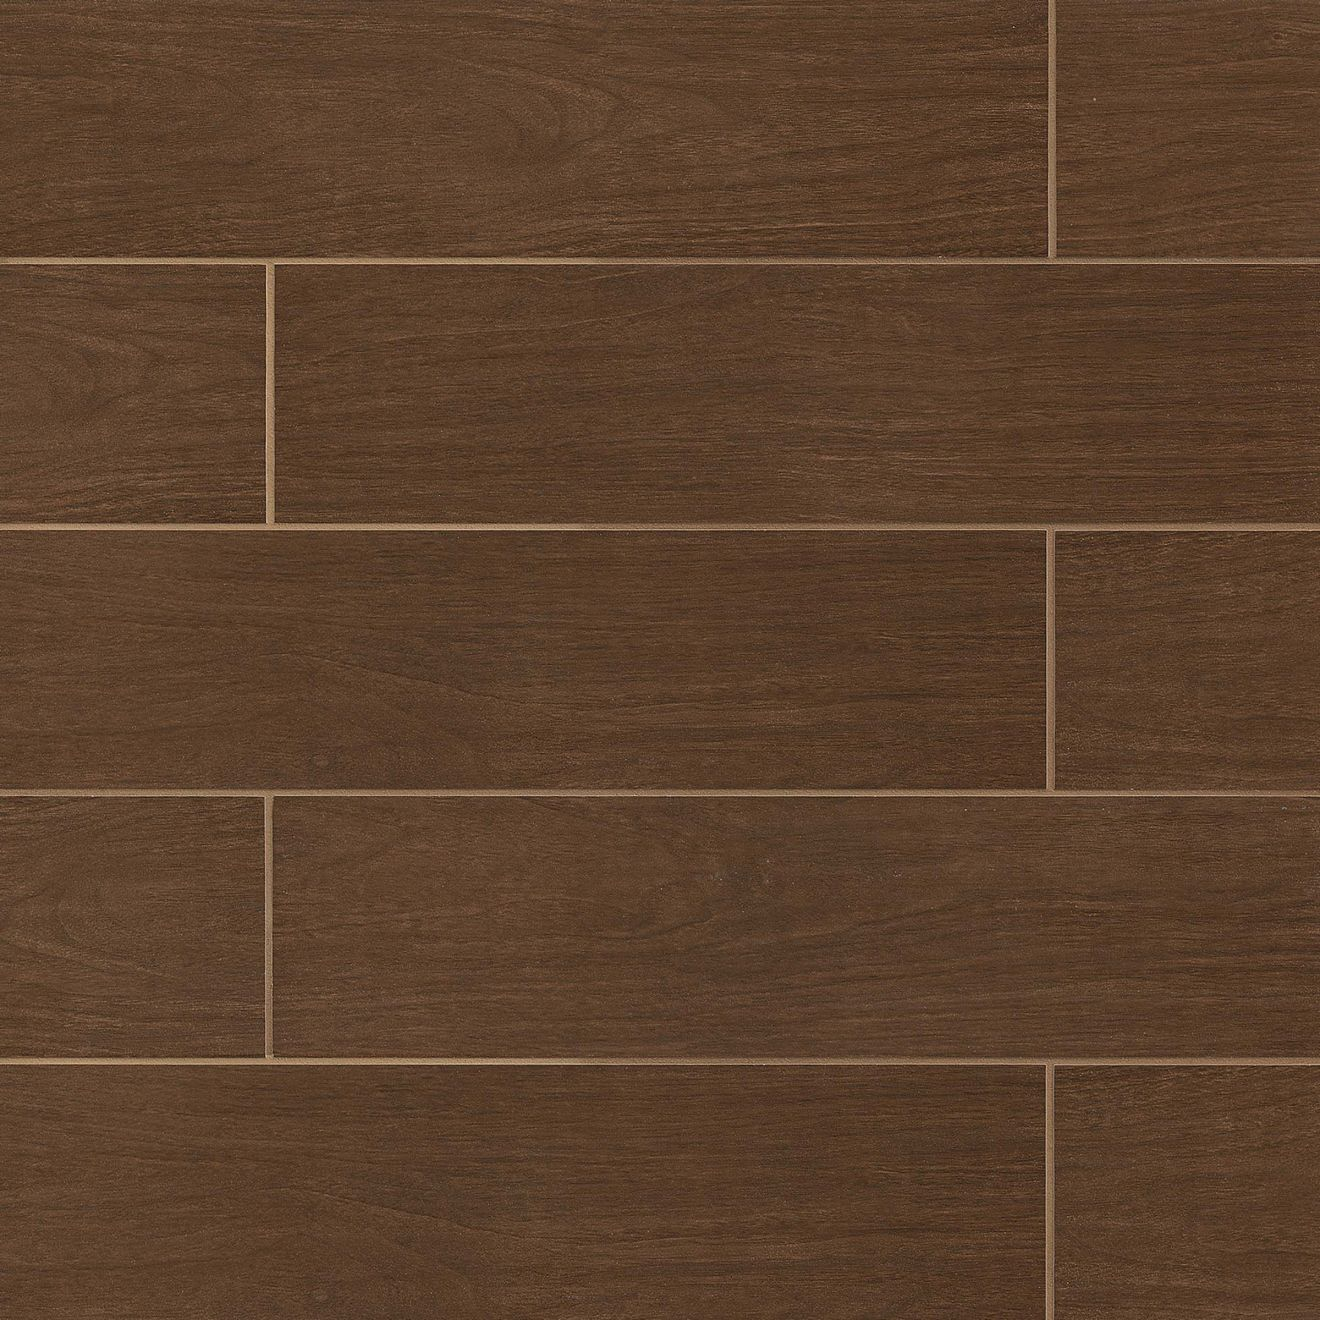 Heathland Collection 6 X 24 X 38 Floor And Wall Tile In Walnut